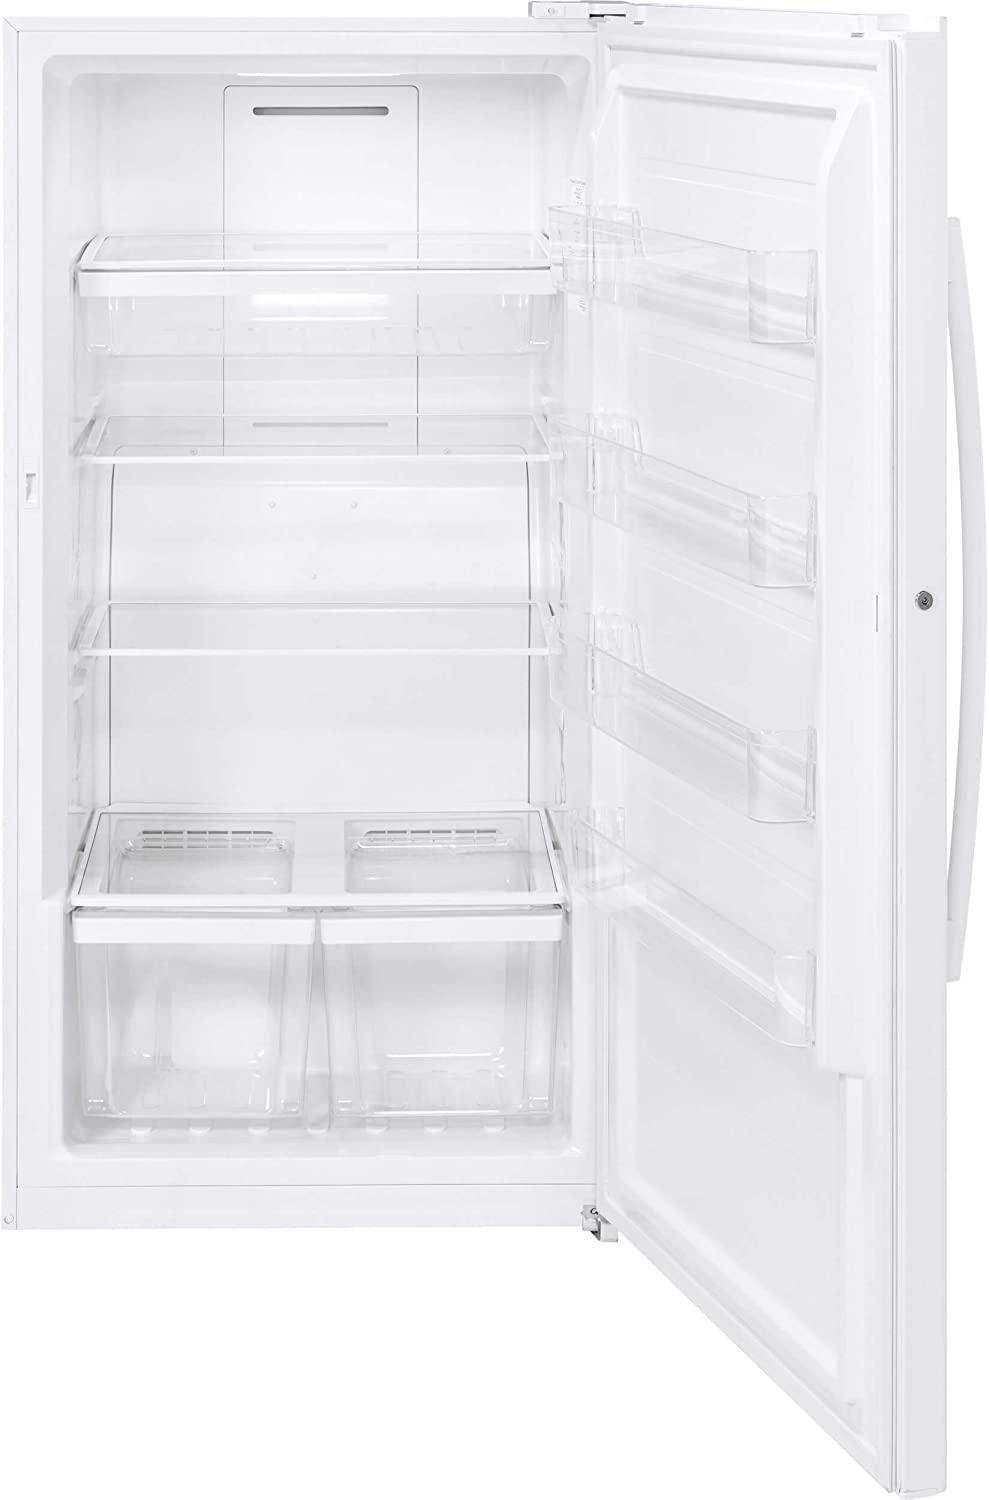 GE FUF17DLRWW UPRIGHT FREEZER